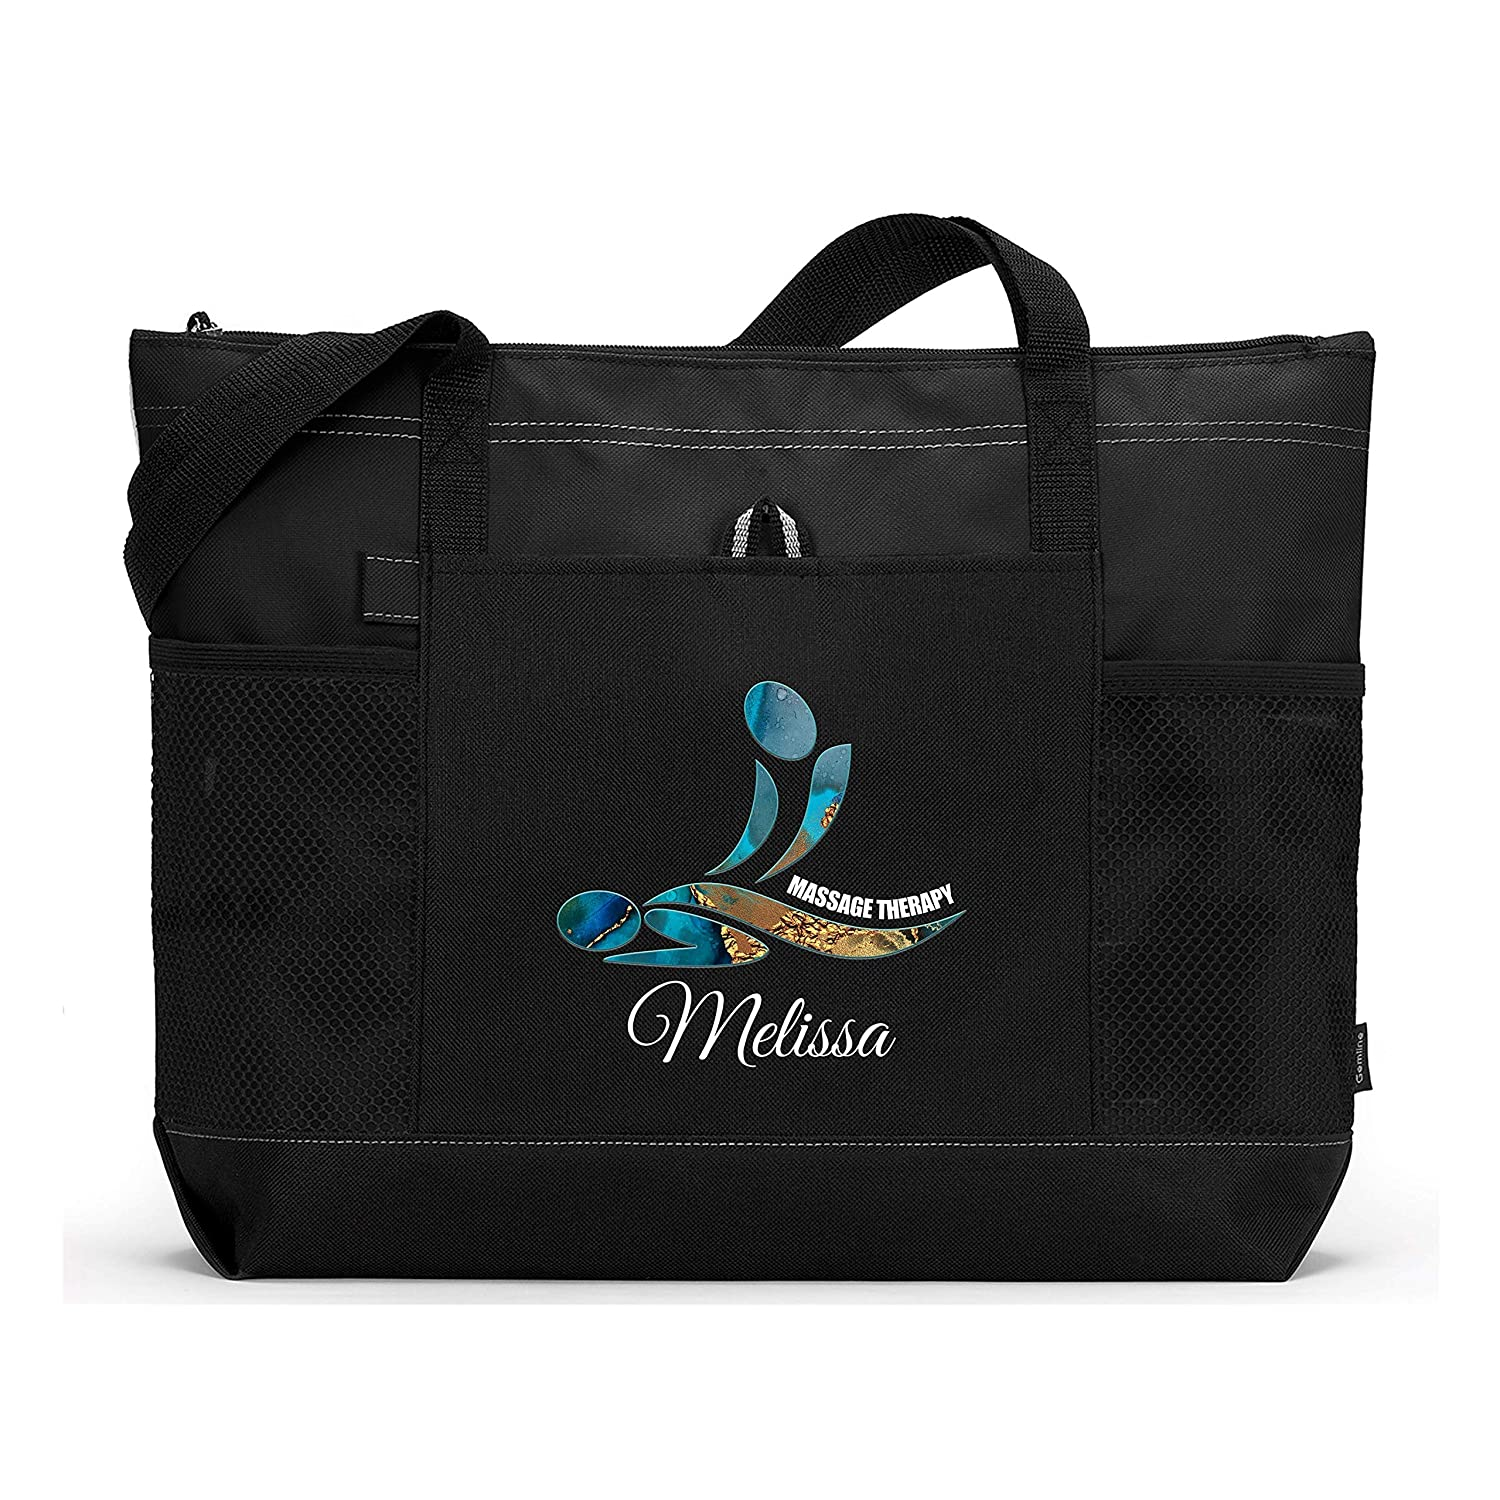 Massage Therapy Personalized Printed Tote Mesh Pockets with Sale price Bag Deluxe